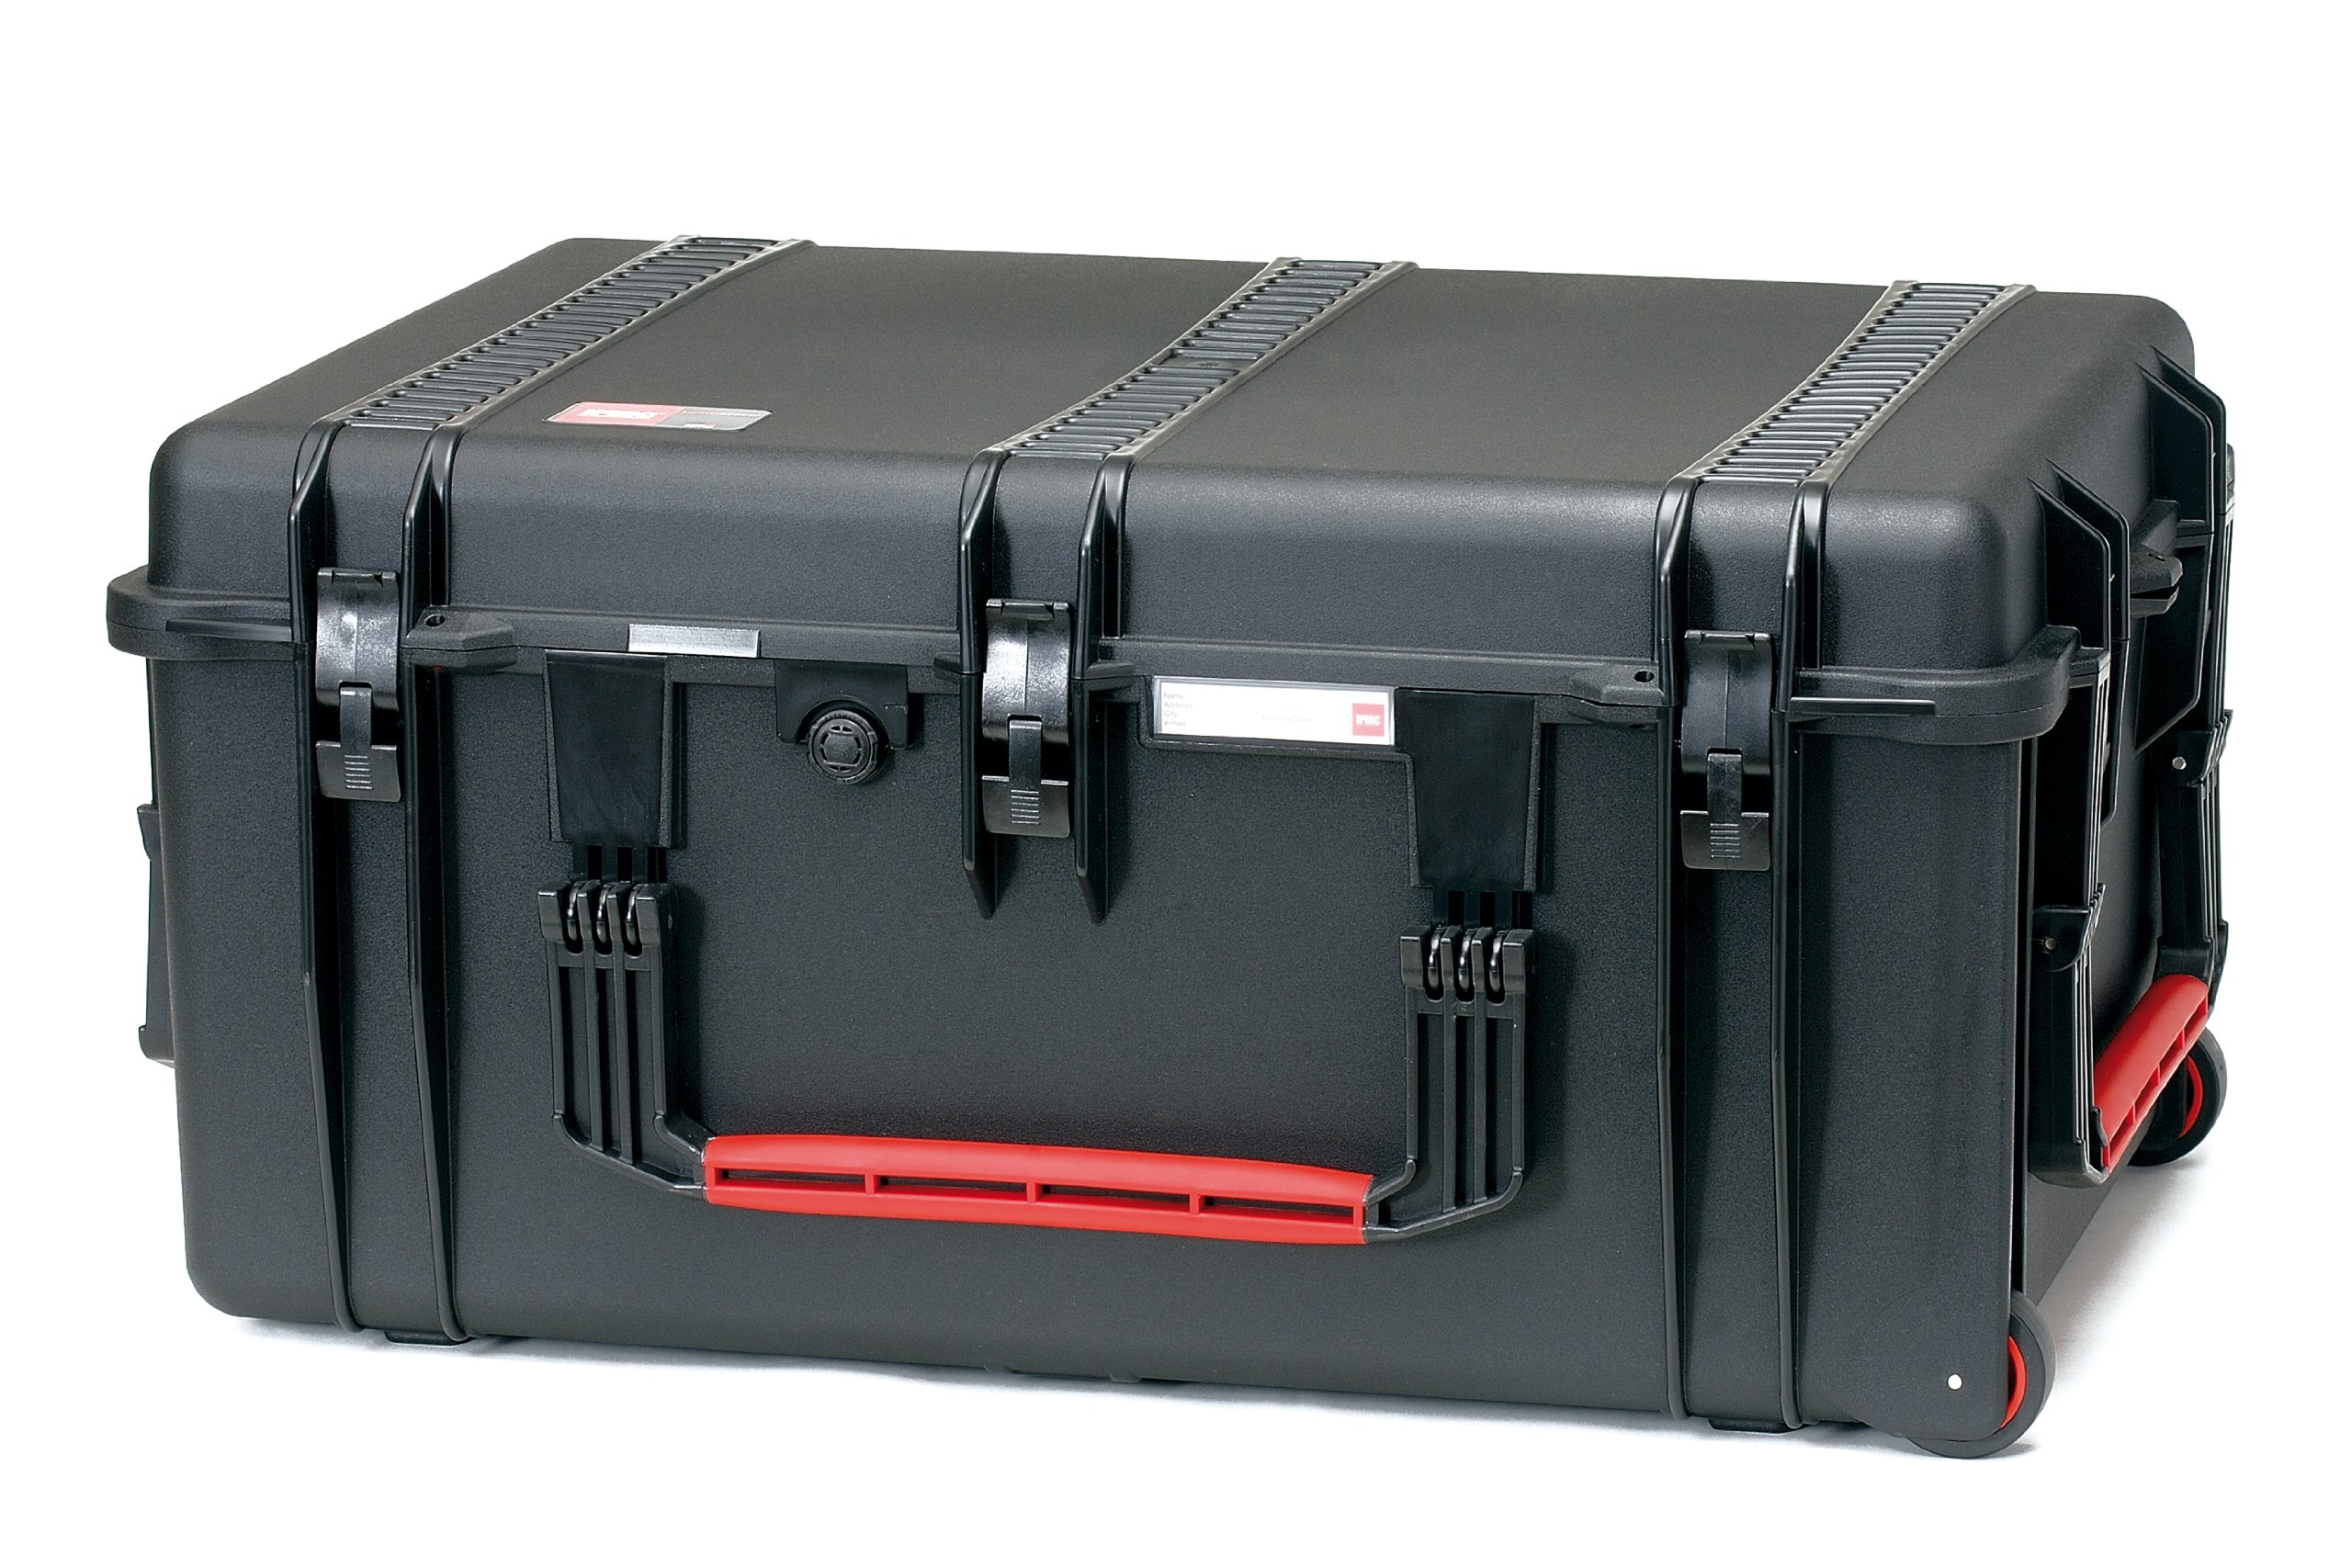 HPRC 2780WDK Wheeled Hard Case with Divider Kit (Black) by HPRC